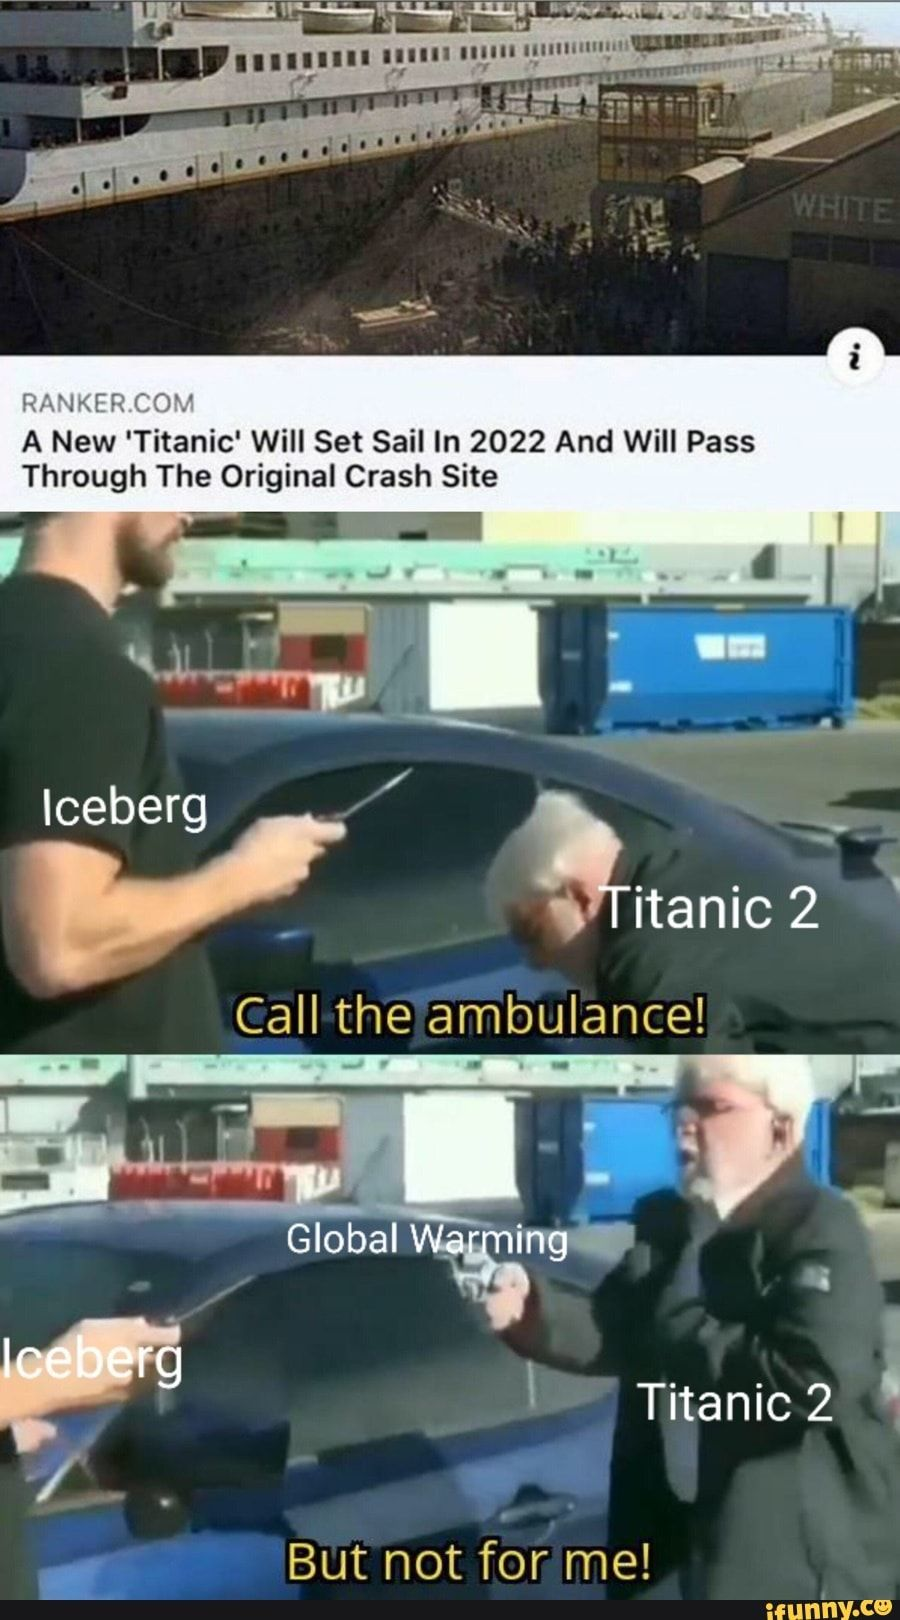 Ranker Com A New Titanic Will Set Sail In 2022 And Will Pass Through The Original Crash Site Gall The Ambulance But Not For Me Ifunny Funny Memes Funny Relatable Potentially higher quality, but larger filesize. ifunny funny memes funny relatable